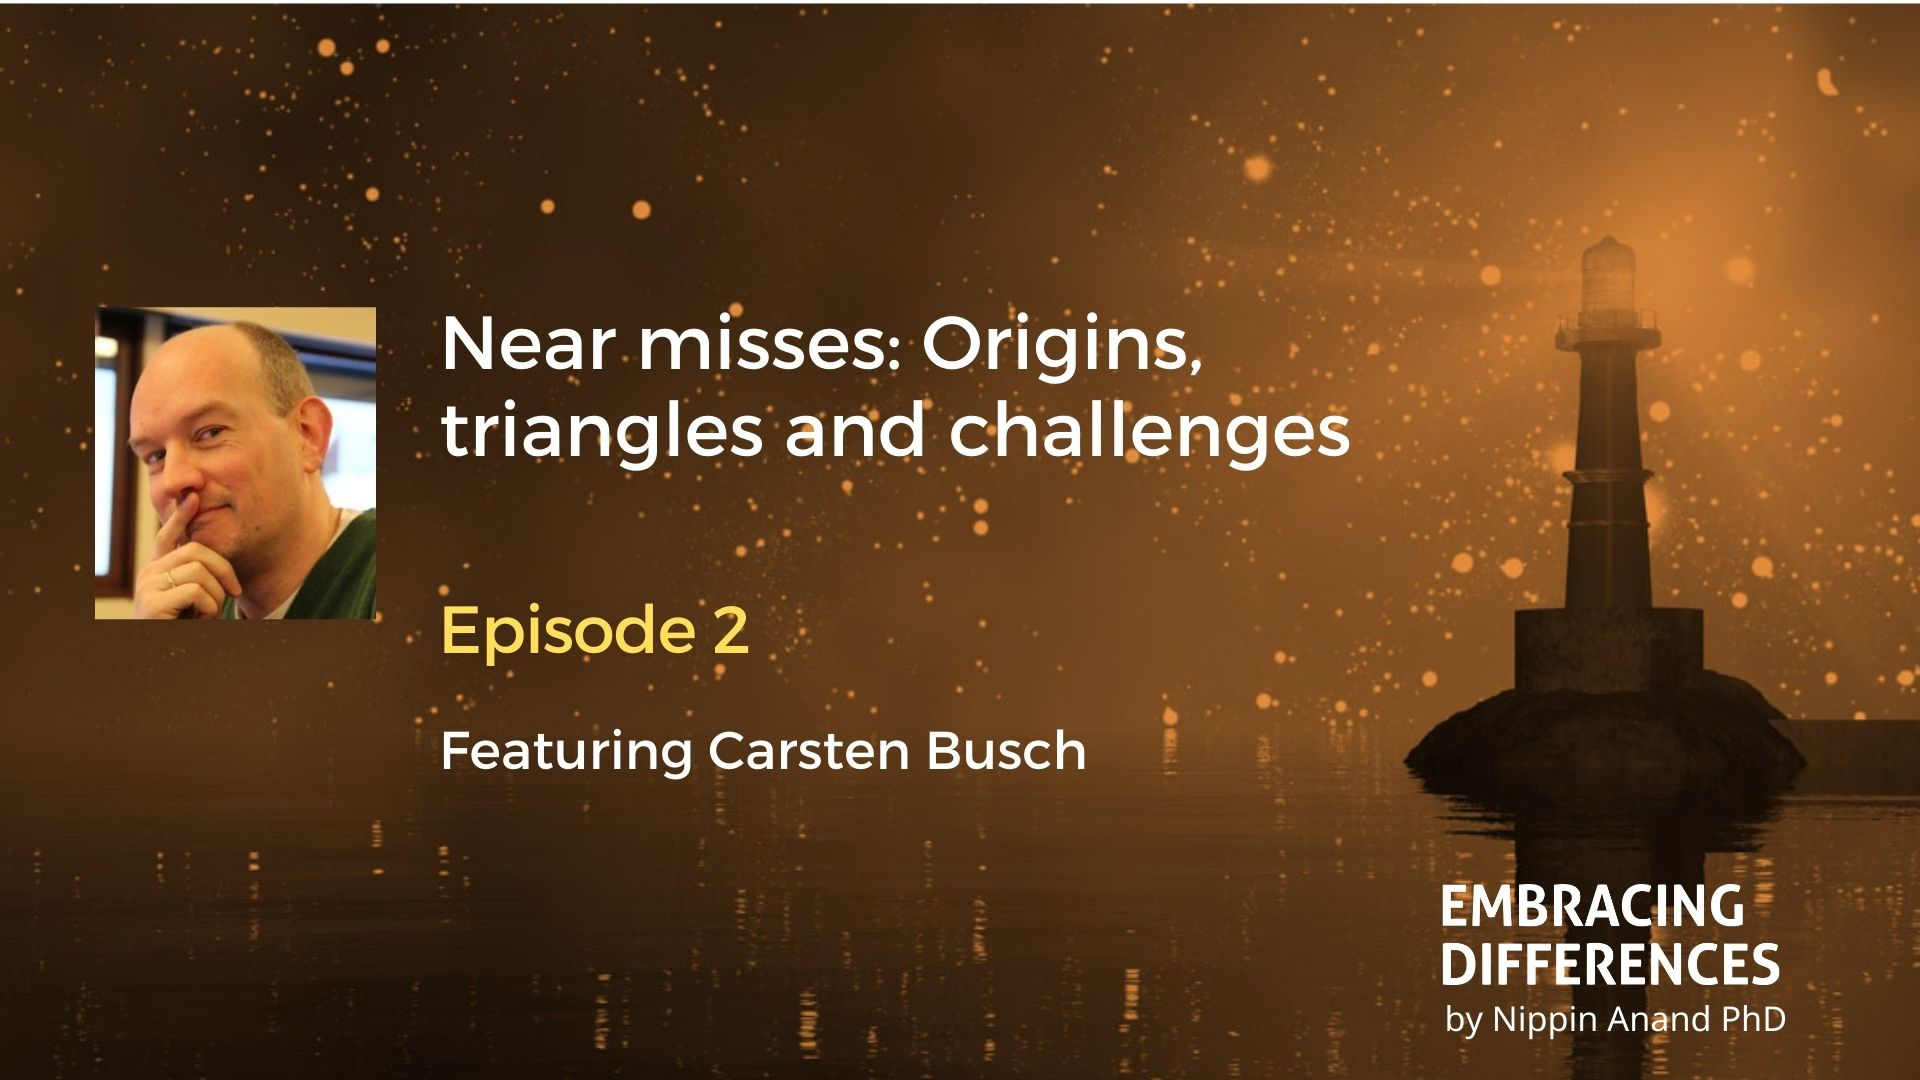 Near misses: Origins, triangles and challenges